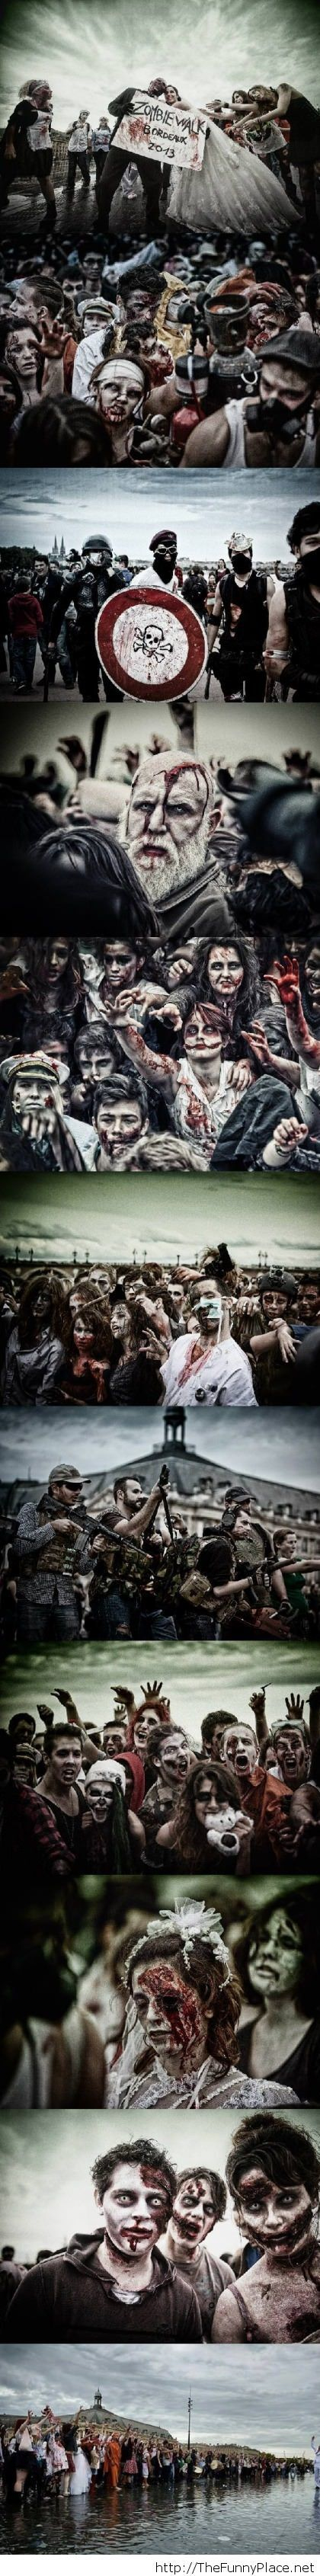 Comments off on zombies awesome pictures